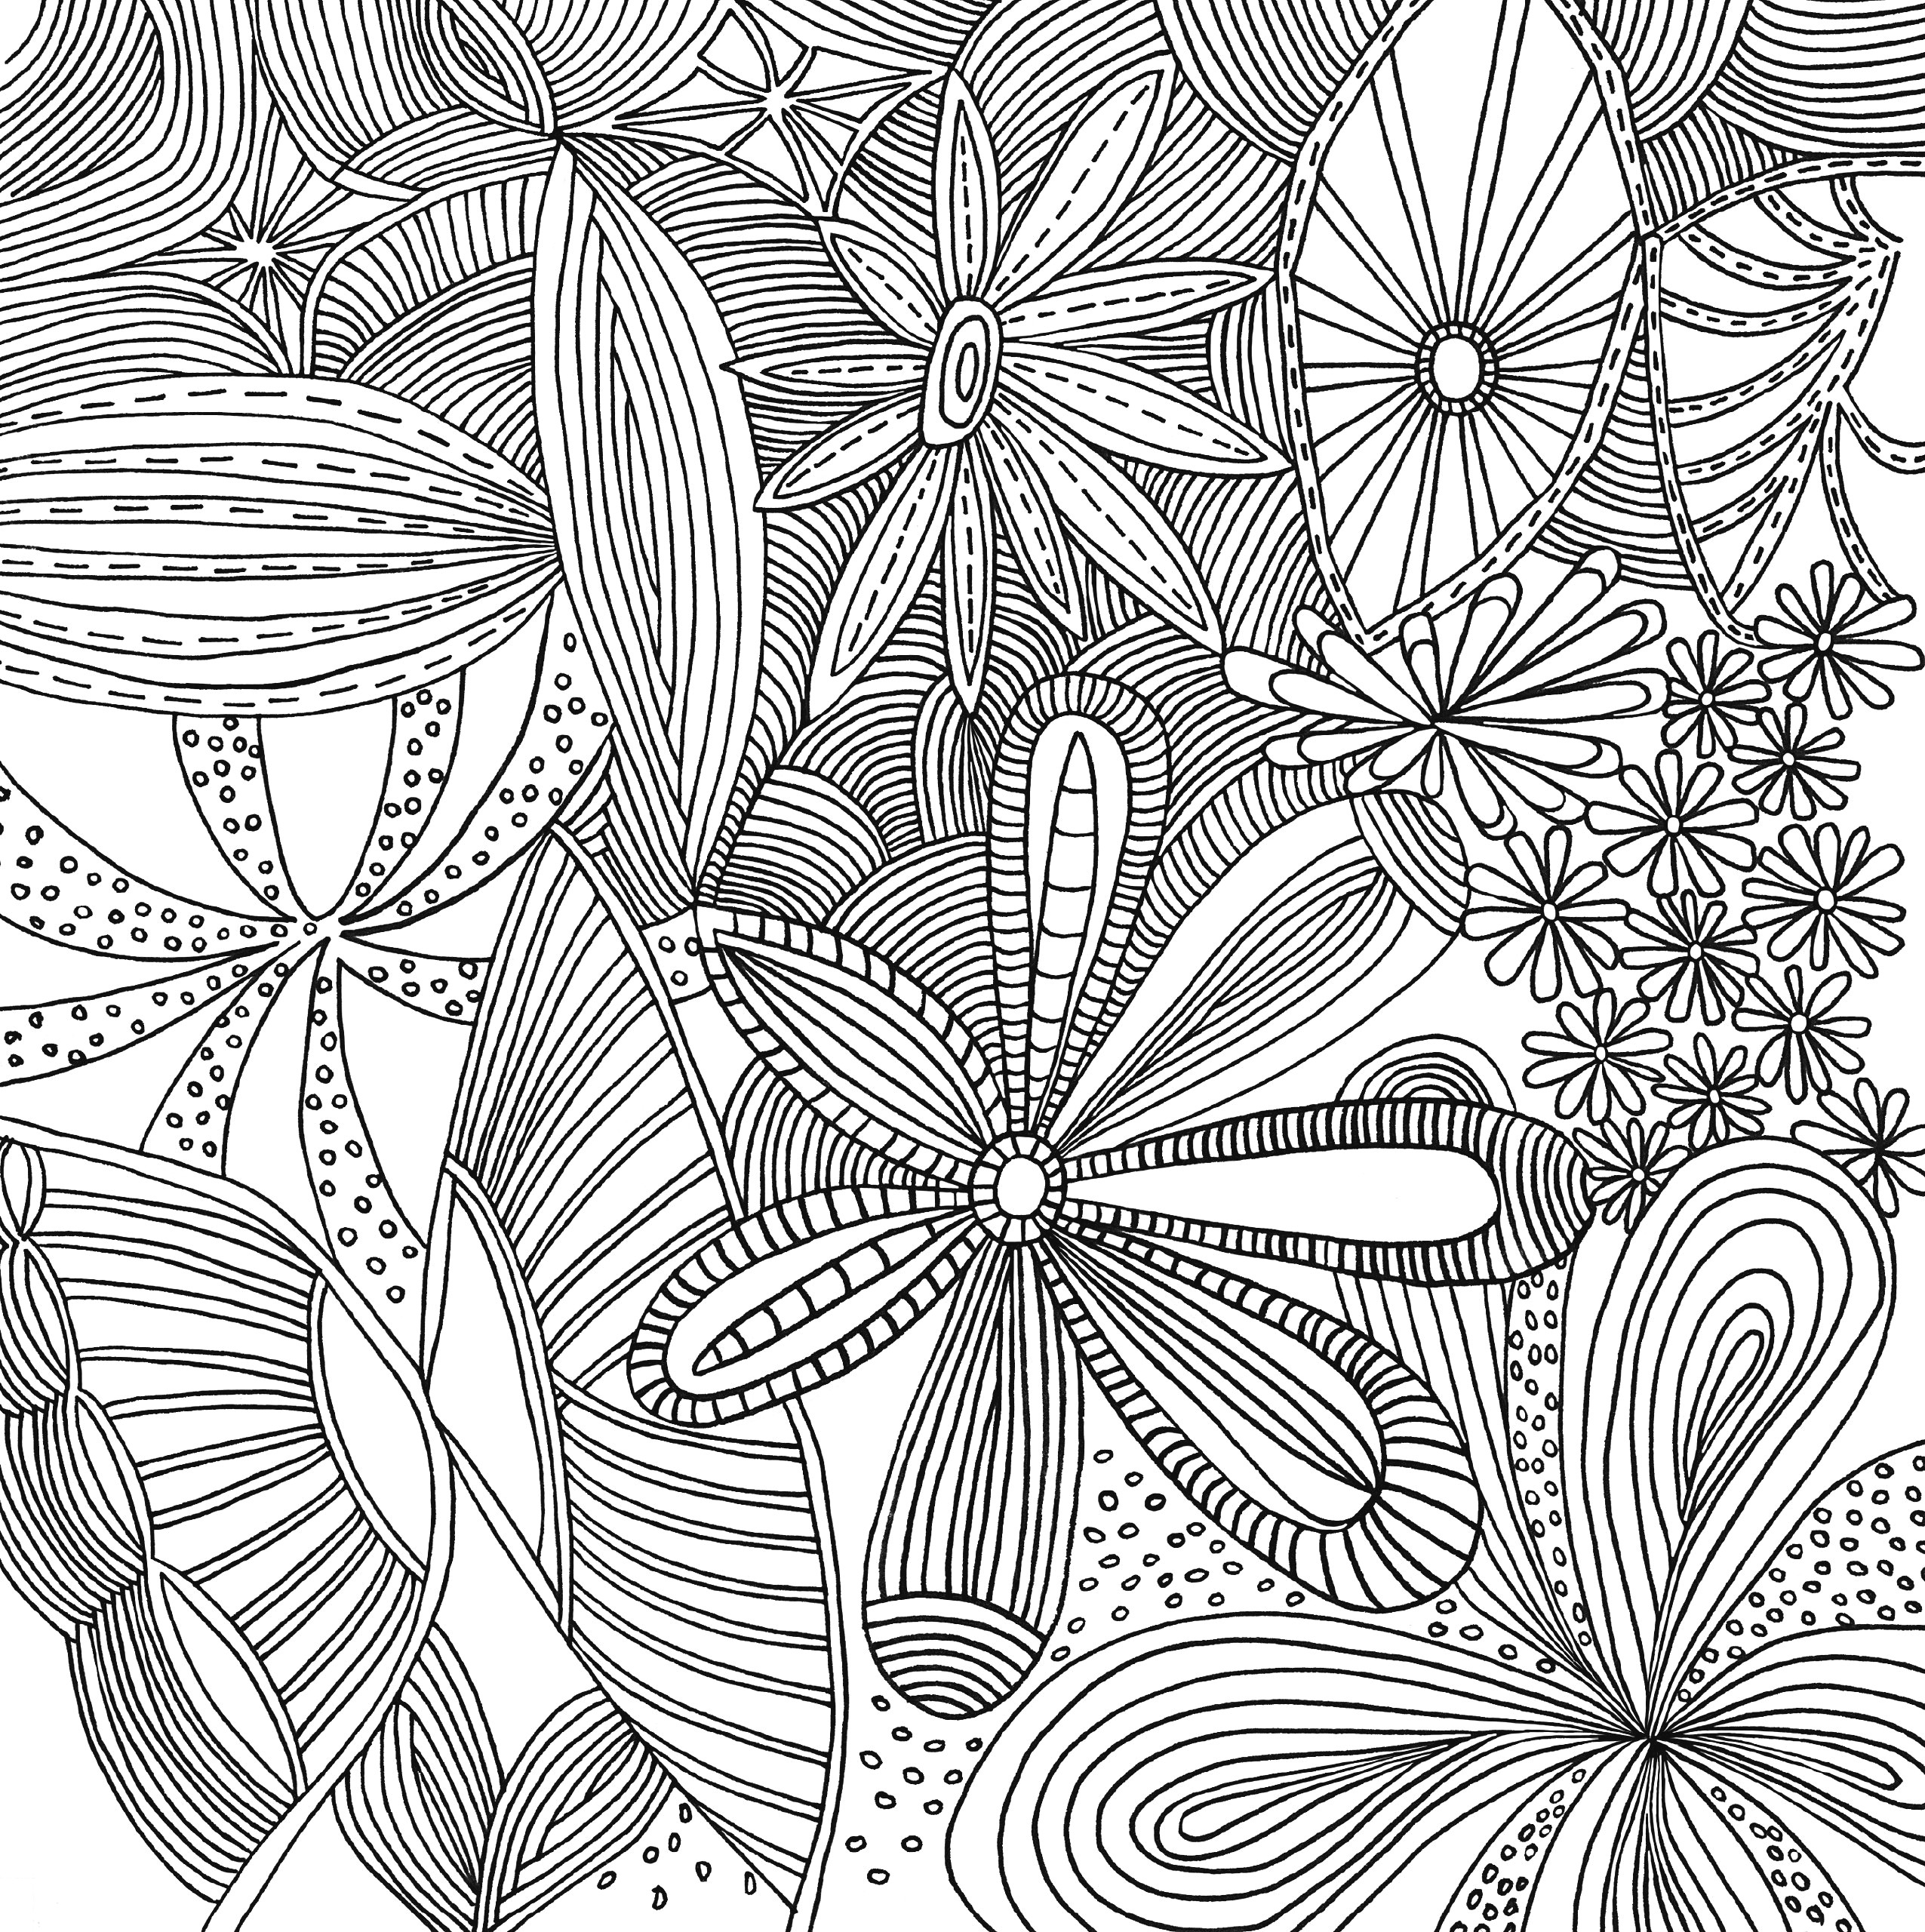 - Funny Coloring Pages For Adults Funny Coloring Pages For Adults